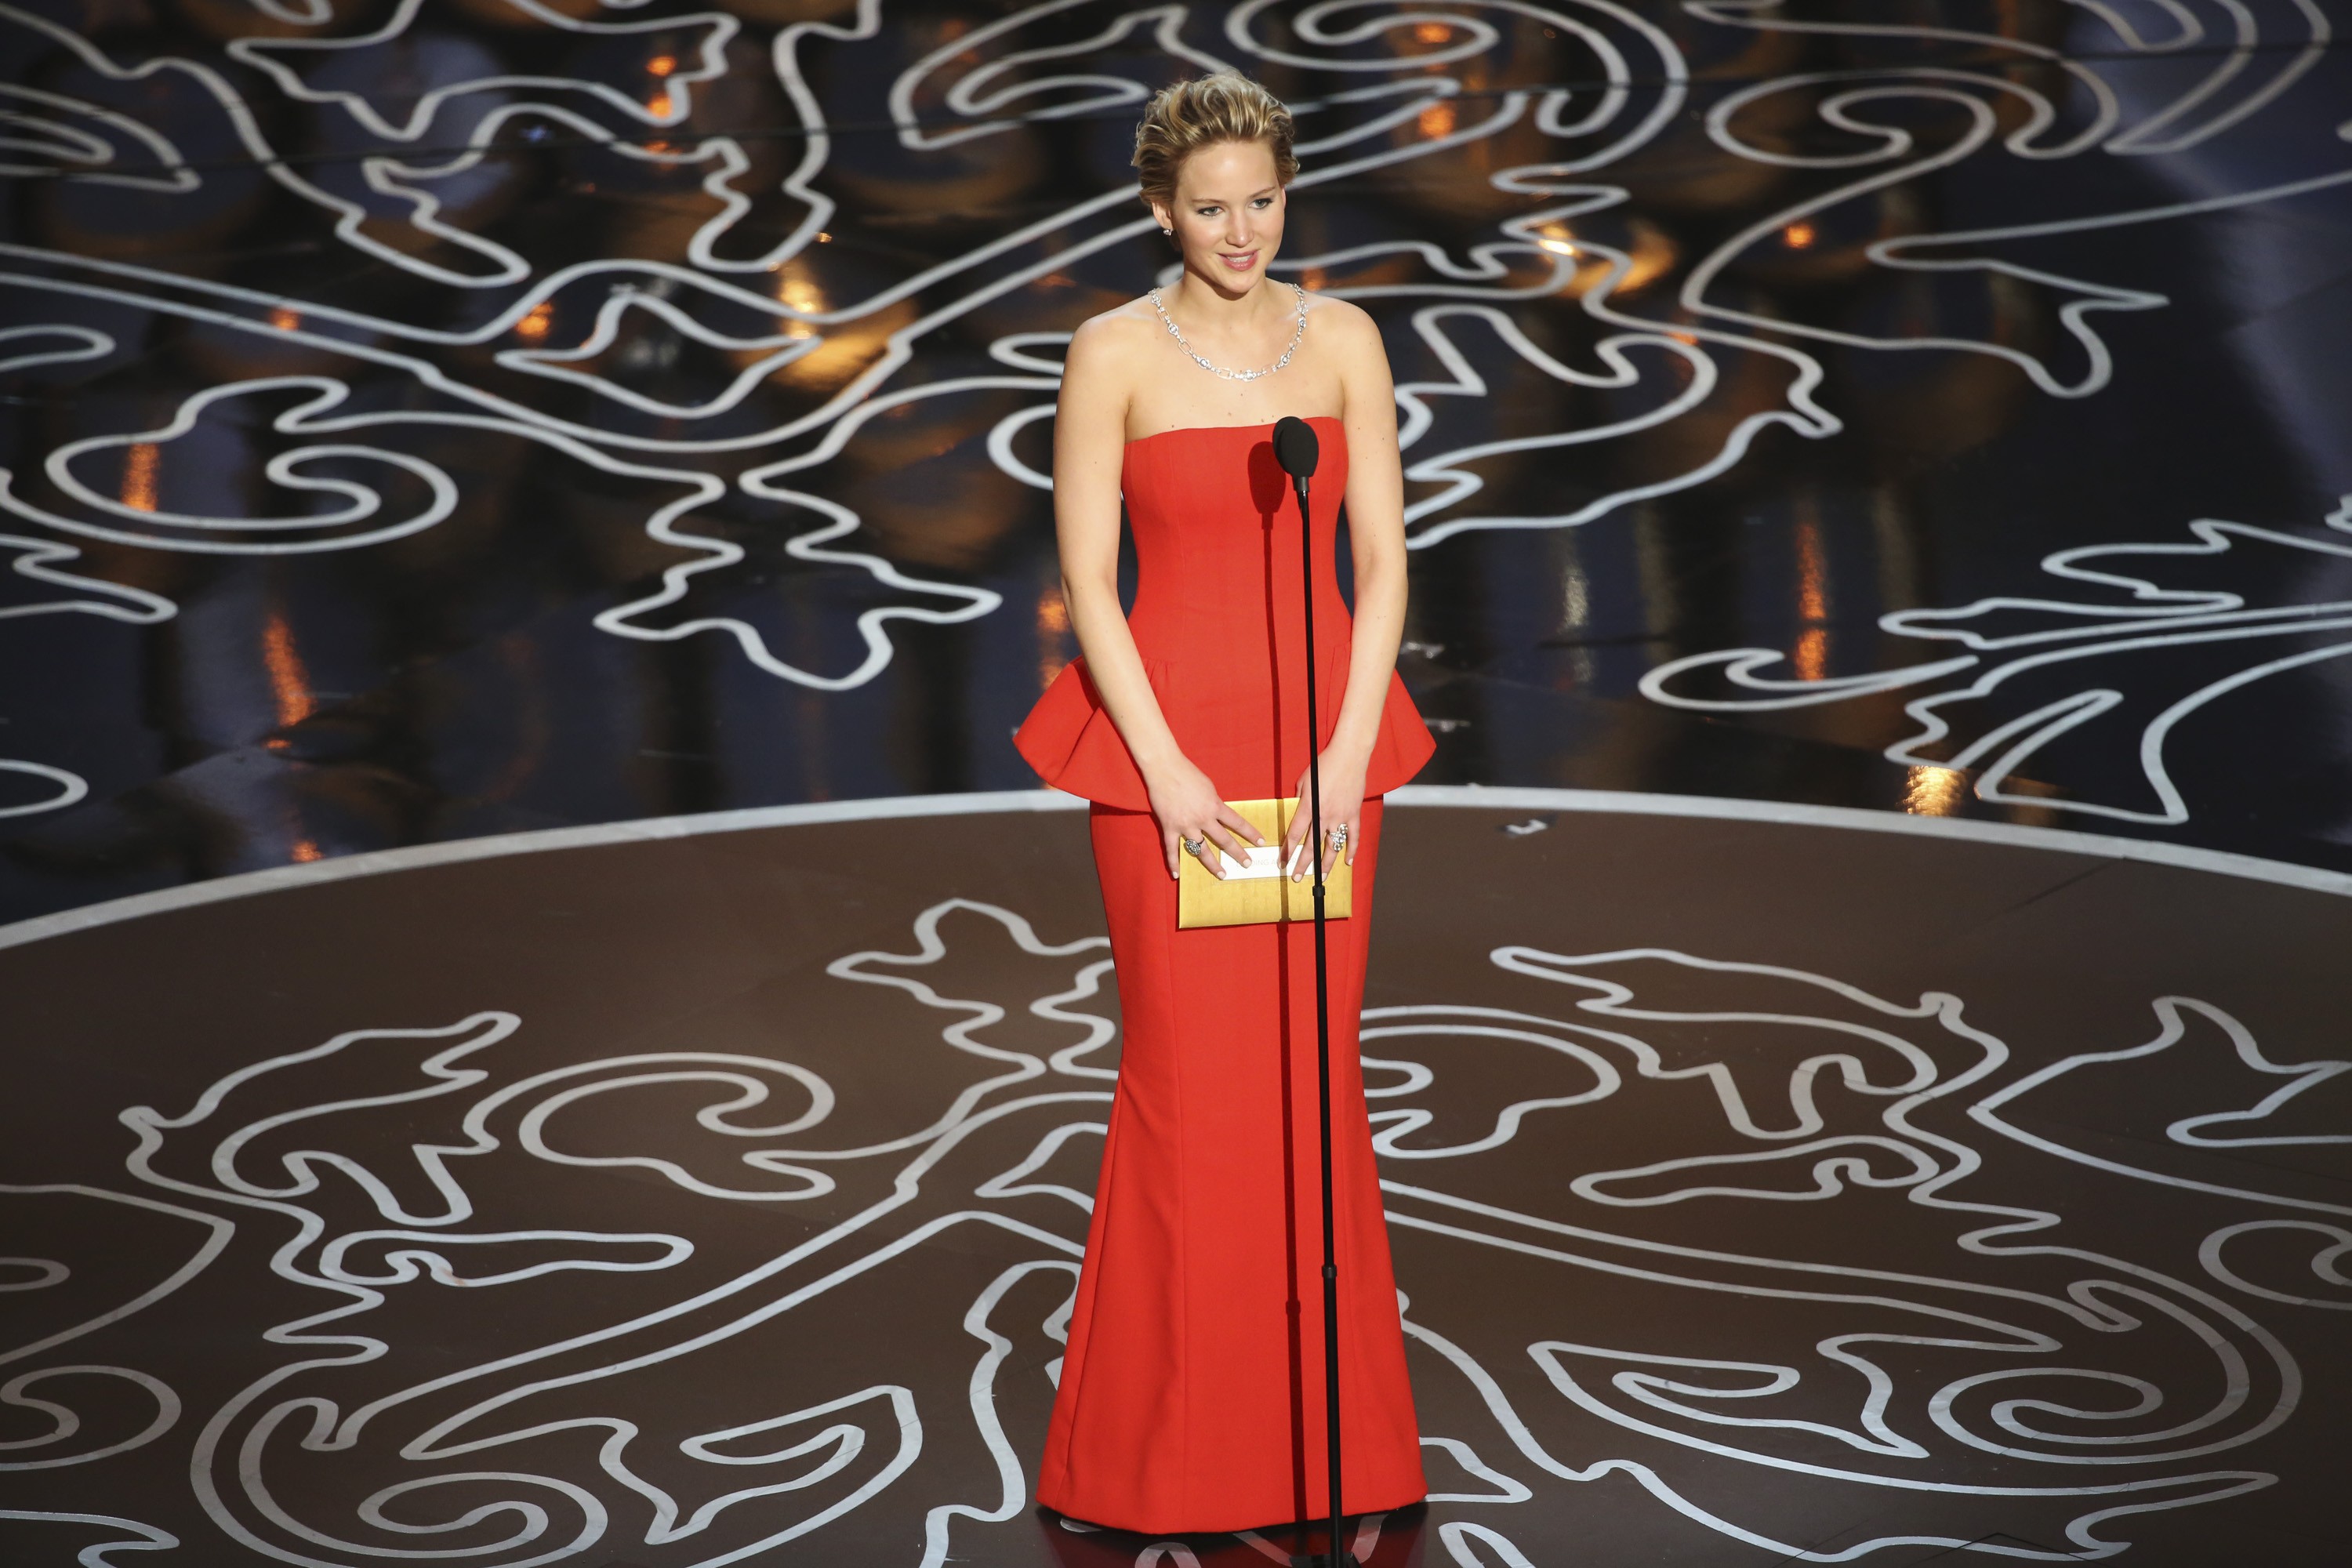 Jennifer Lawrence presents the Best Actor category at the 86th Academy Awards on March 2, 2013 in Los Angeles.